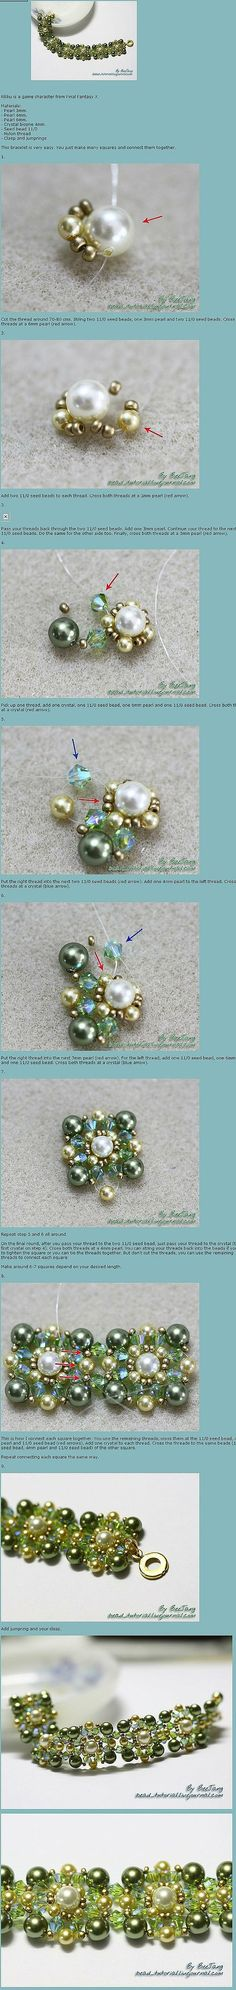 Beaded beads tutorials and patterns, beaded jewelry patterns, wzory bizuterii koralikowej, bizuteria z koralikow - wzory i tutoriale Wire Jewelry, Beaded Jewelry, Handmade Jewelry, Beaded Bracelets, Diamond Bracelets, Earrings Handmade, Jewlery, Bangles, Jewelry Patterns